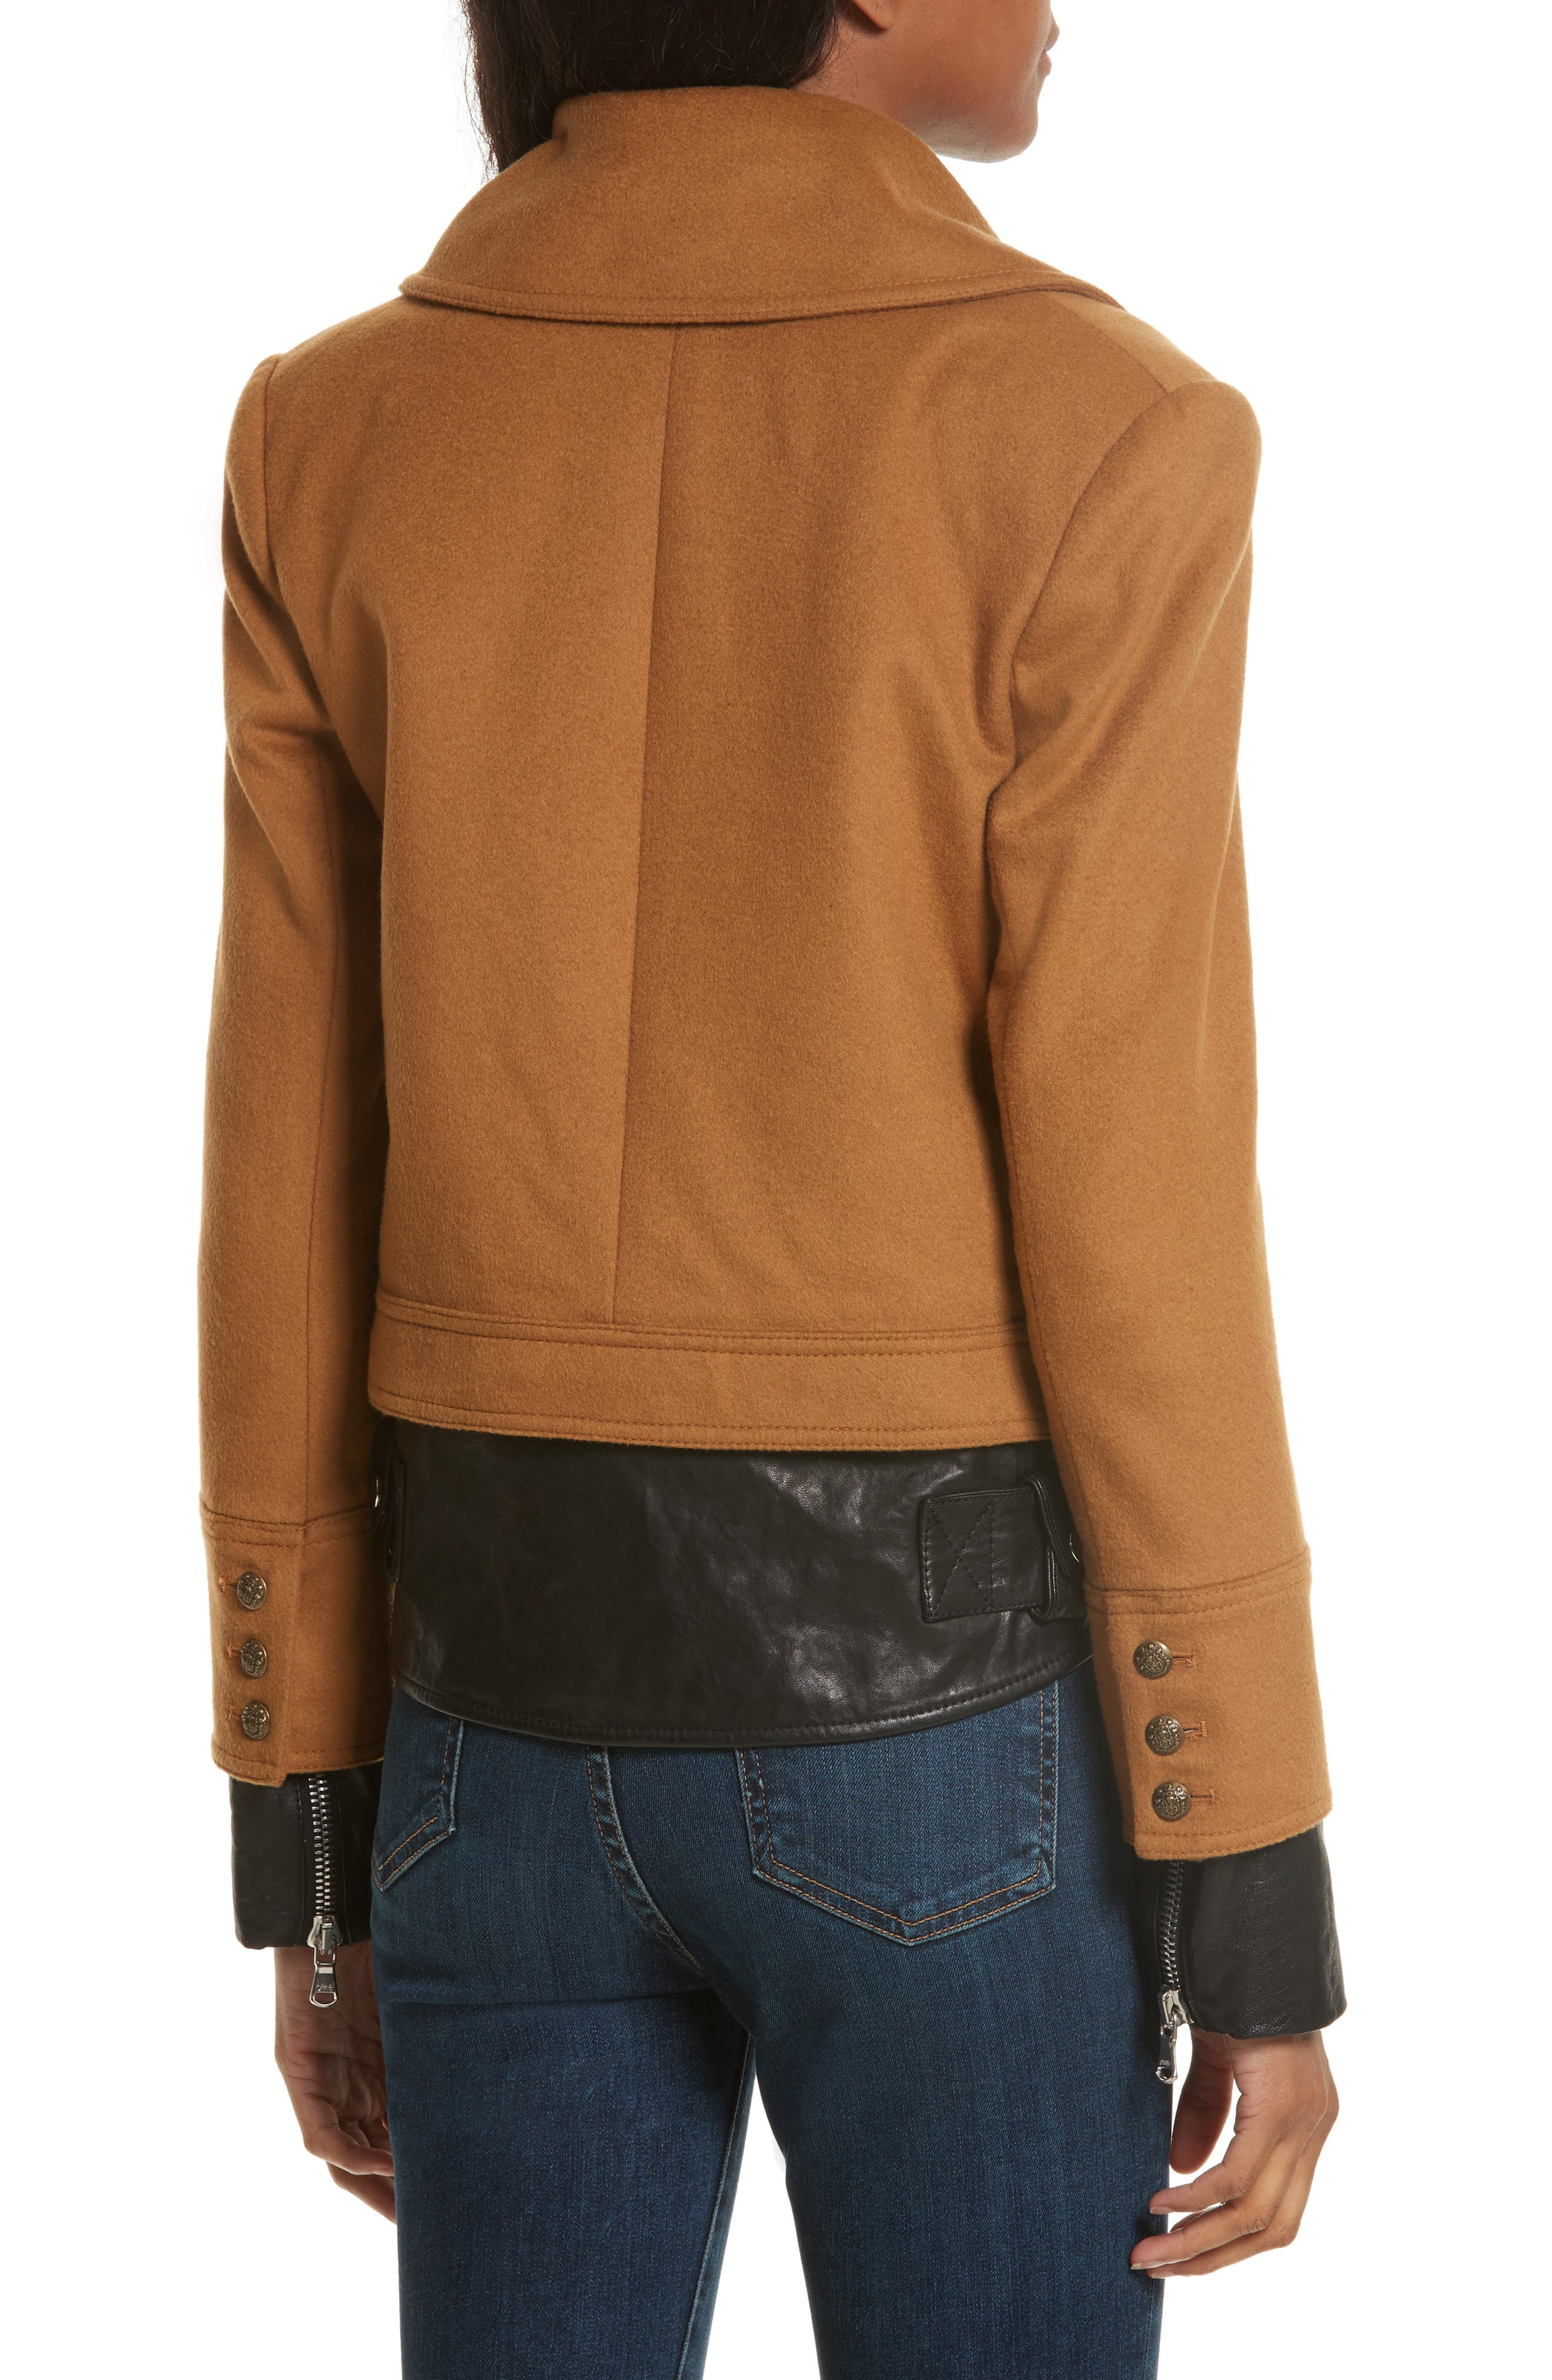 Yara Leather Hem Peacoat,                             Alternate thumbnail 3, color,                             Camel